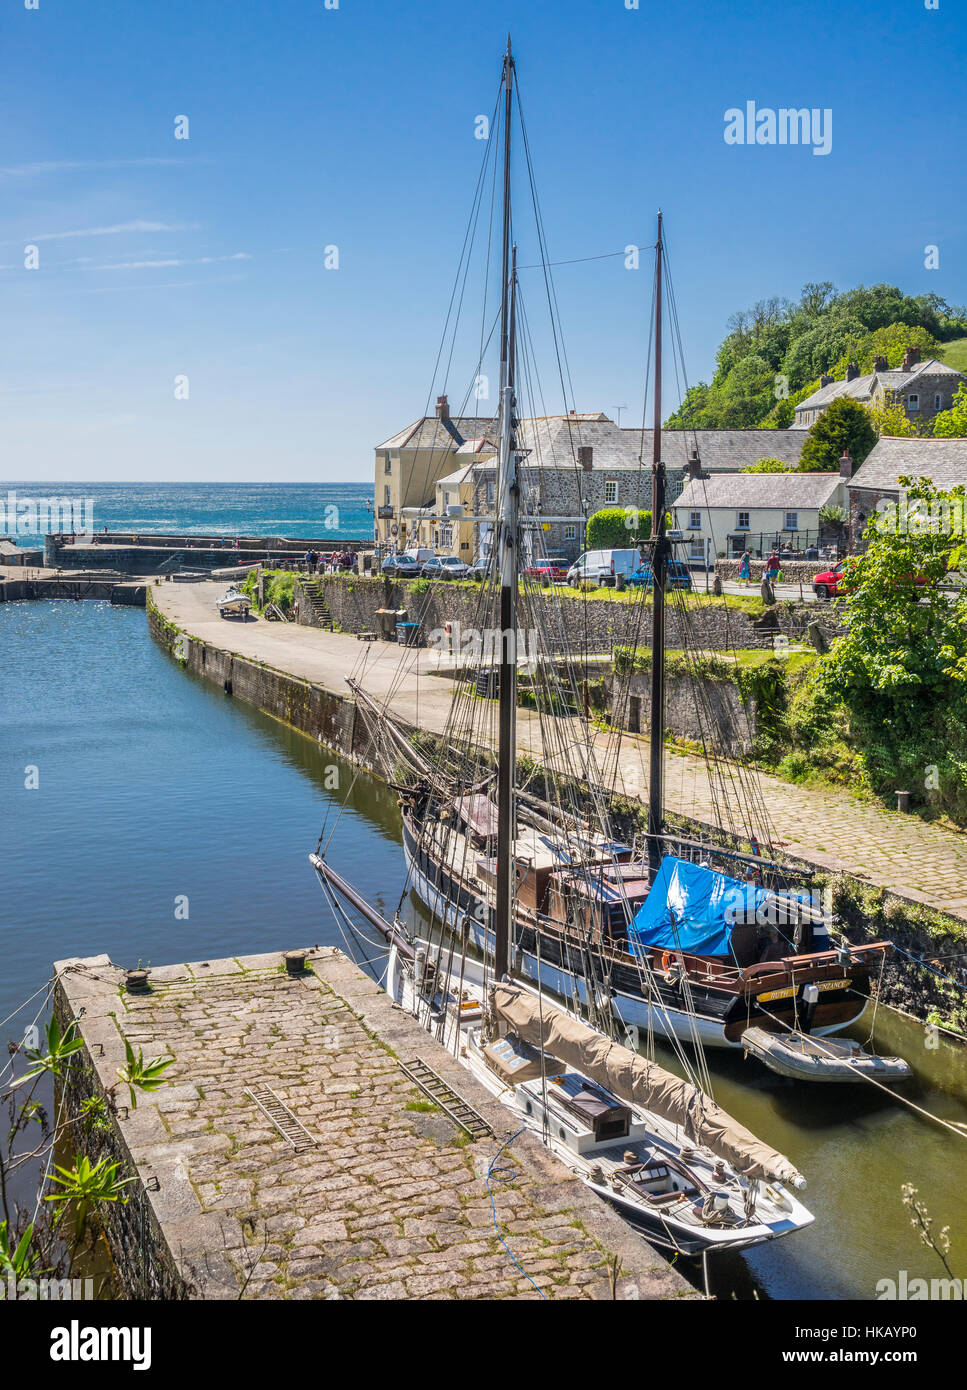 Great Britain, South West England, Cornwall, inner harbour of Charlestown - Stock Image